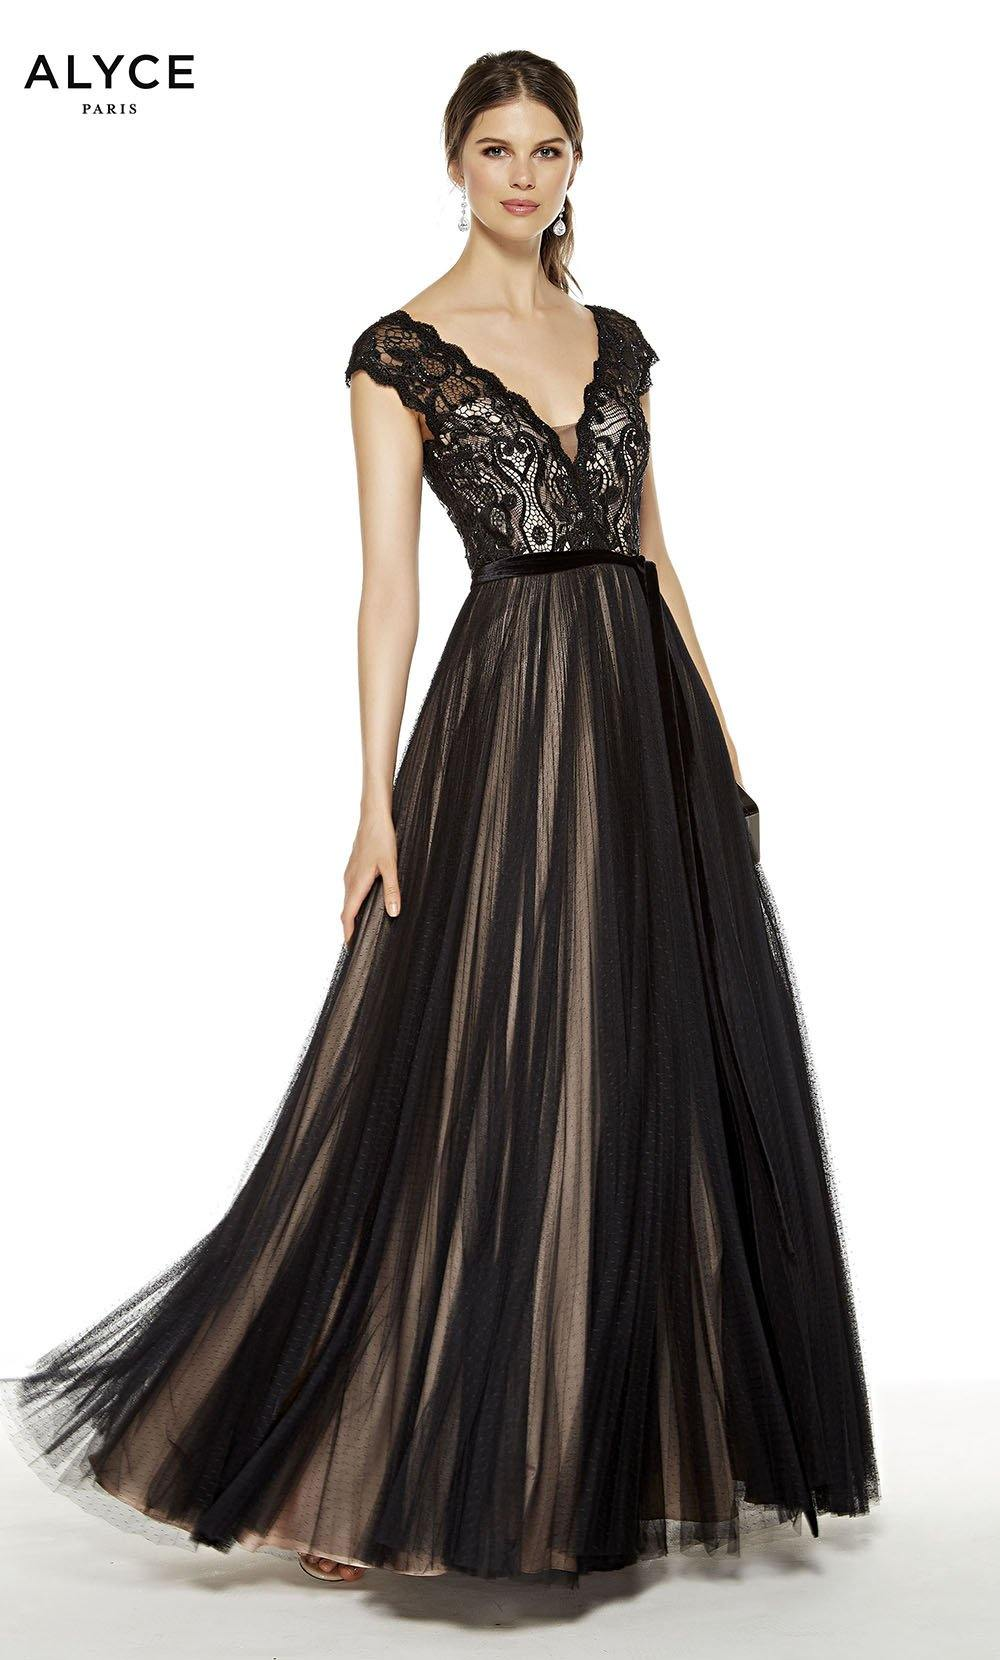 Black-Rosewater formal dress with a V-neck and capped sleeves